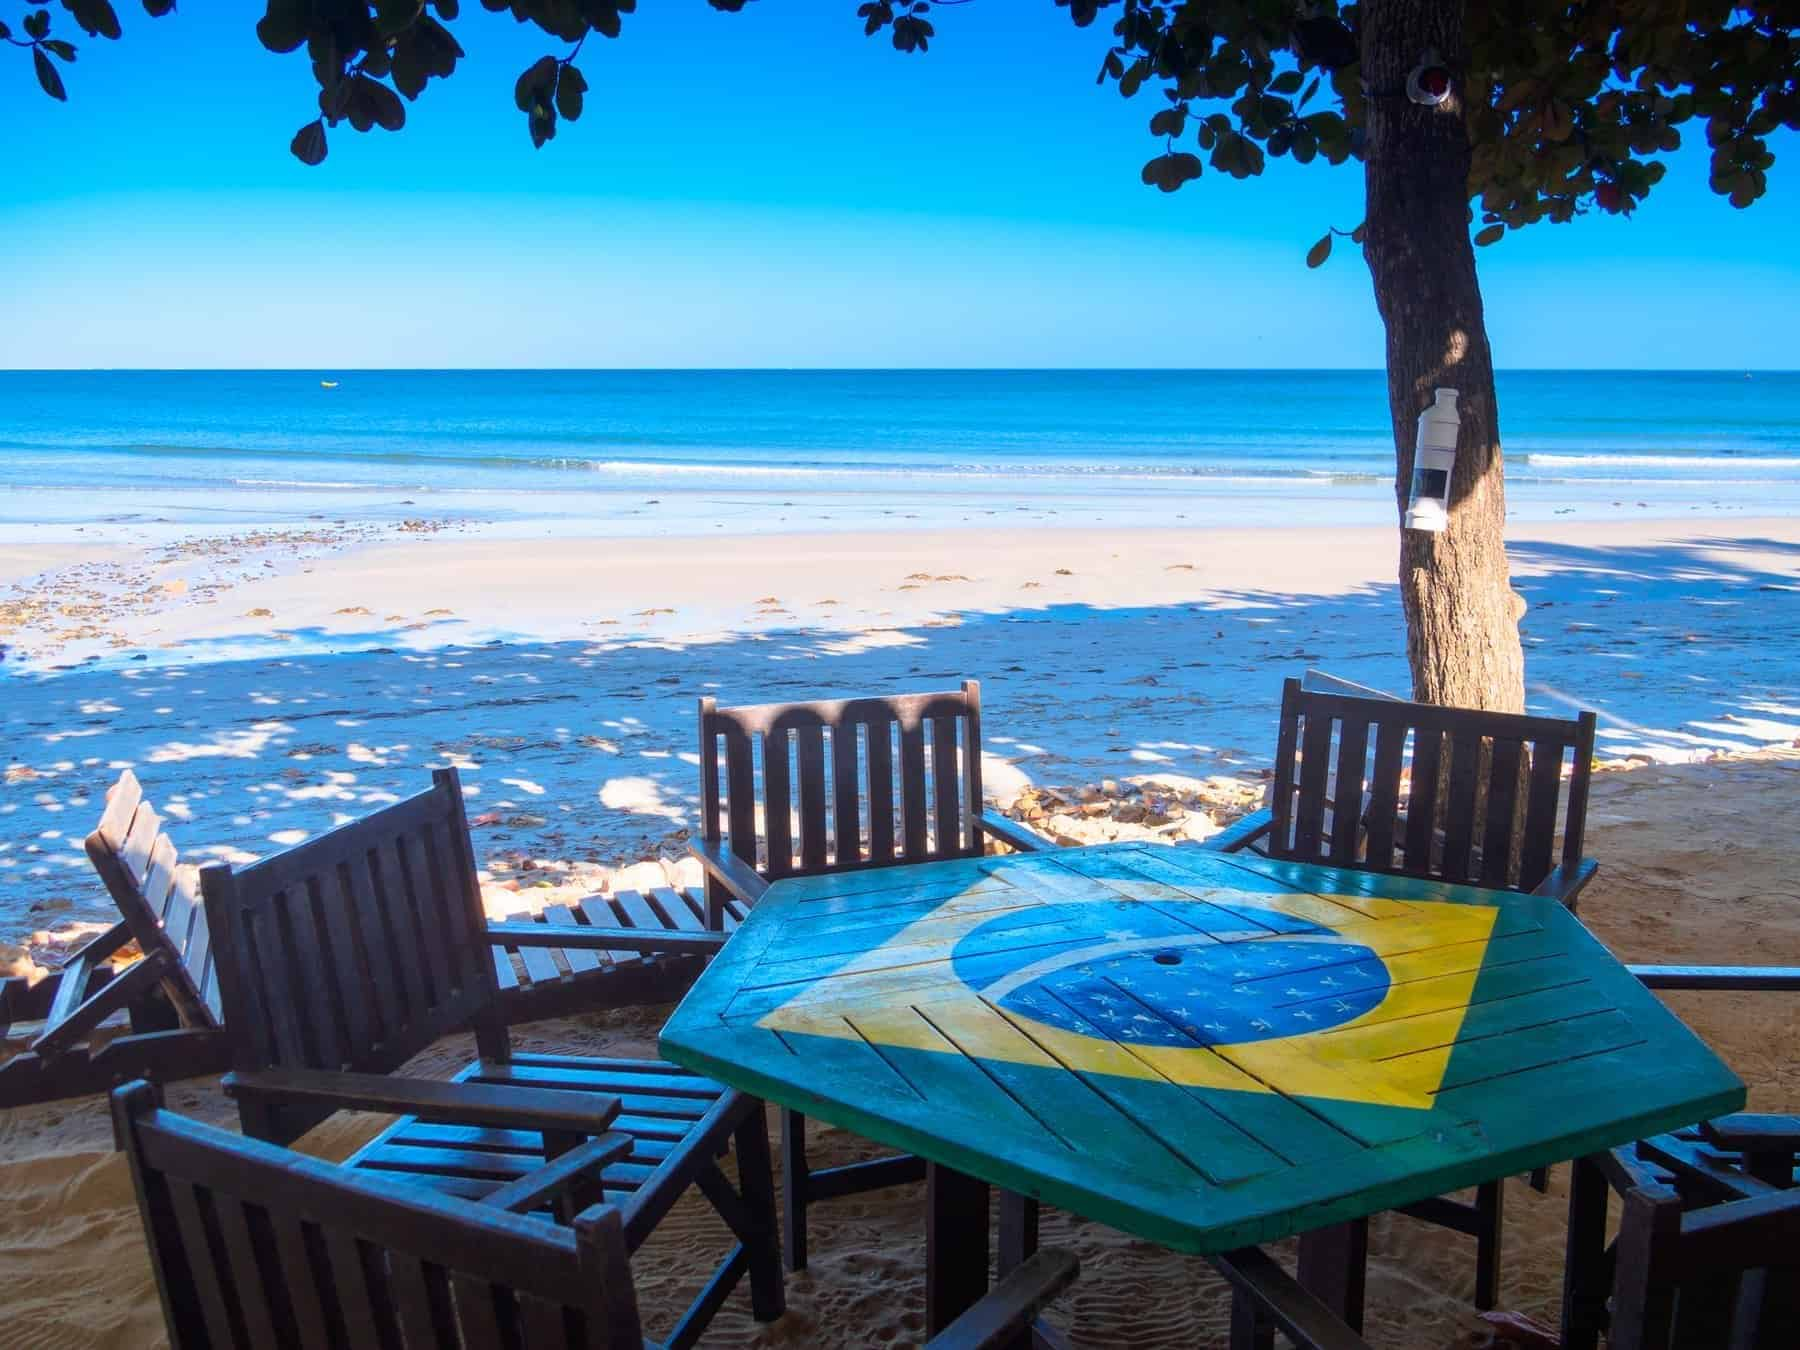 Main beach of the village with table with the flag of Brazil - Jericoacoara National Park - State of Ceara - Brazil